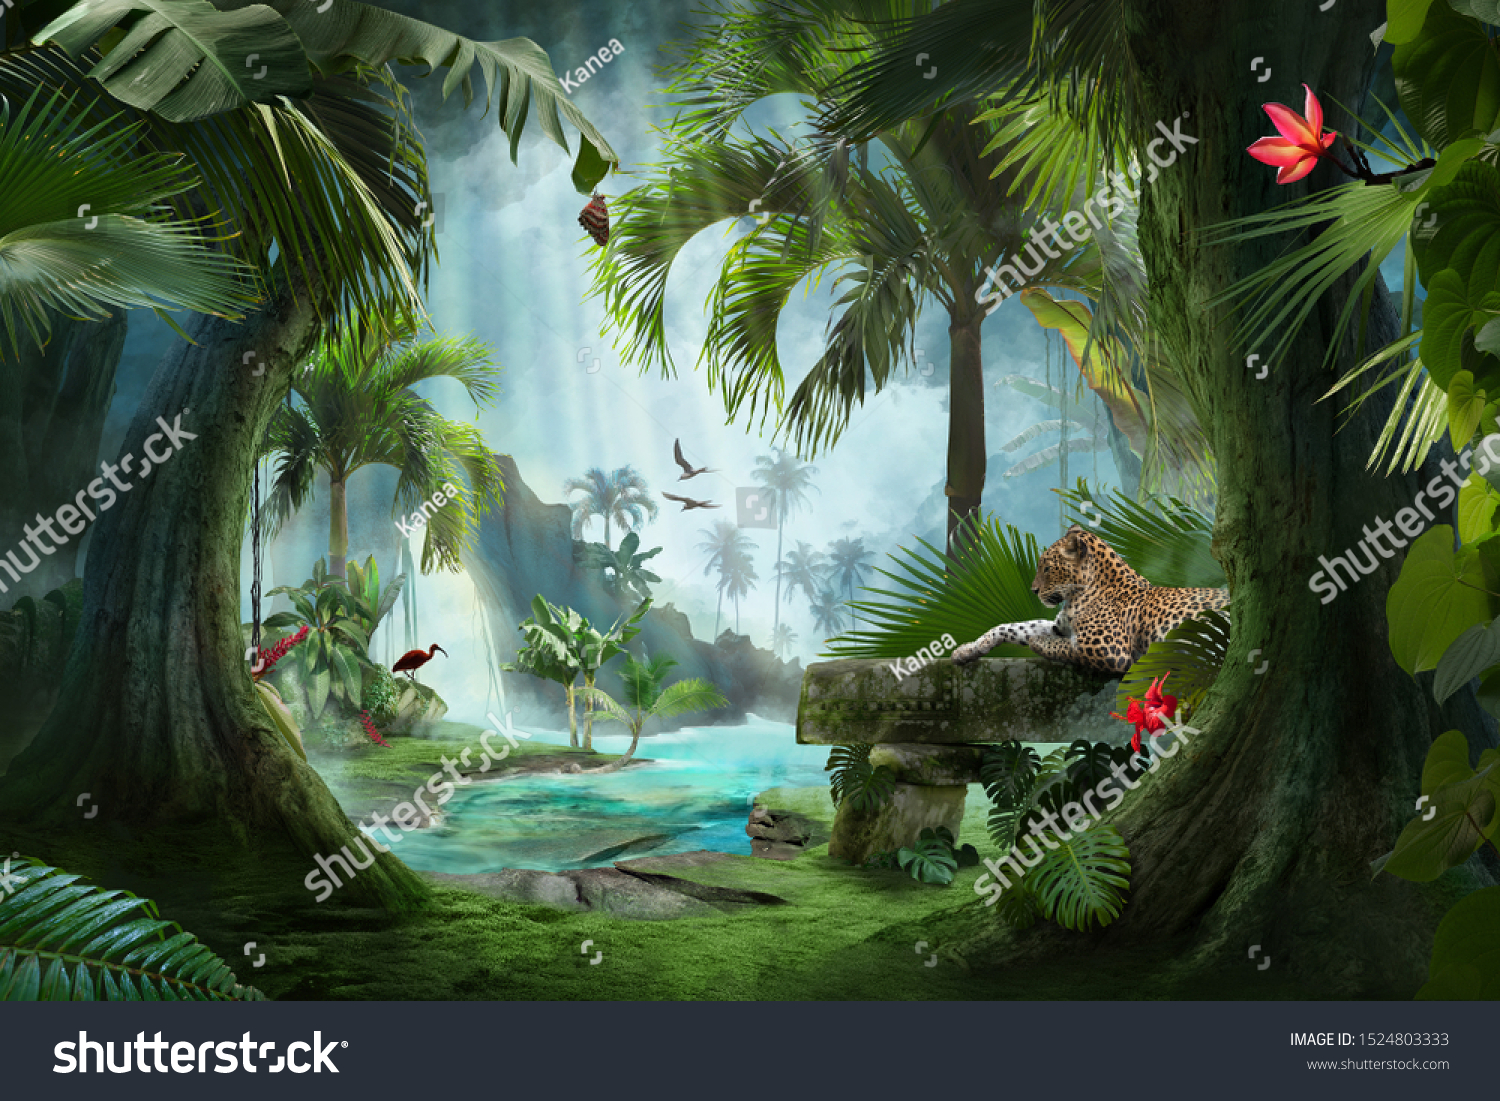 beautiful jungle beach lagoon view with a jaguar, palm trees and tropical leaves, can be used as background #1524803333